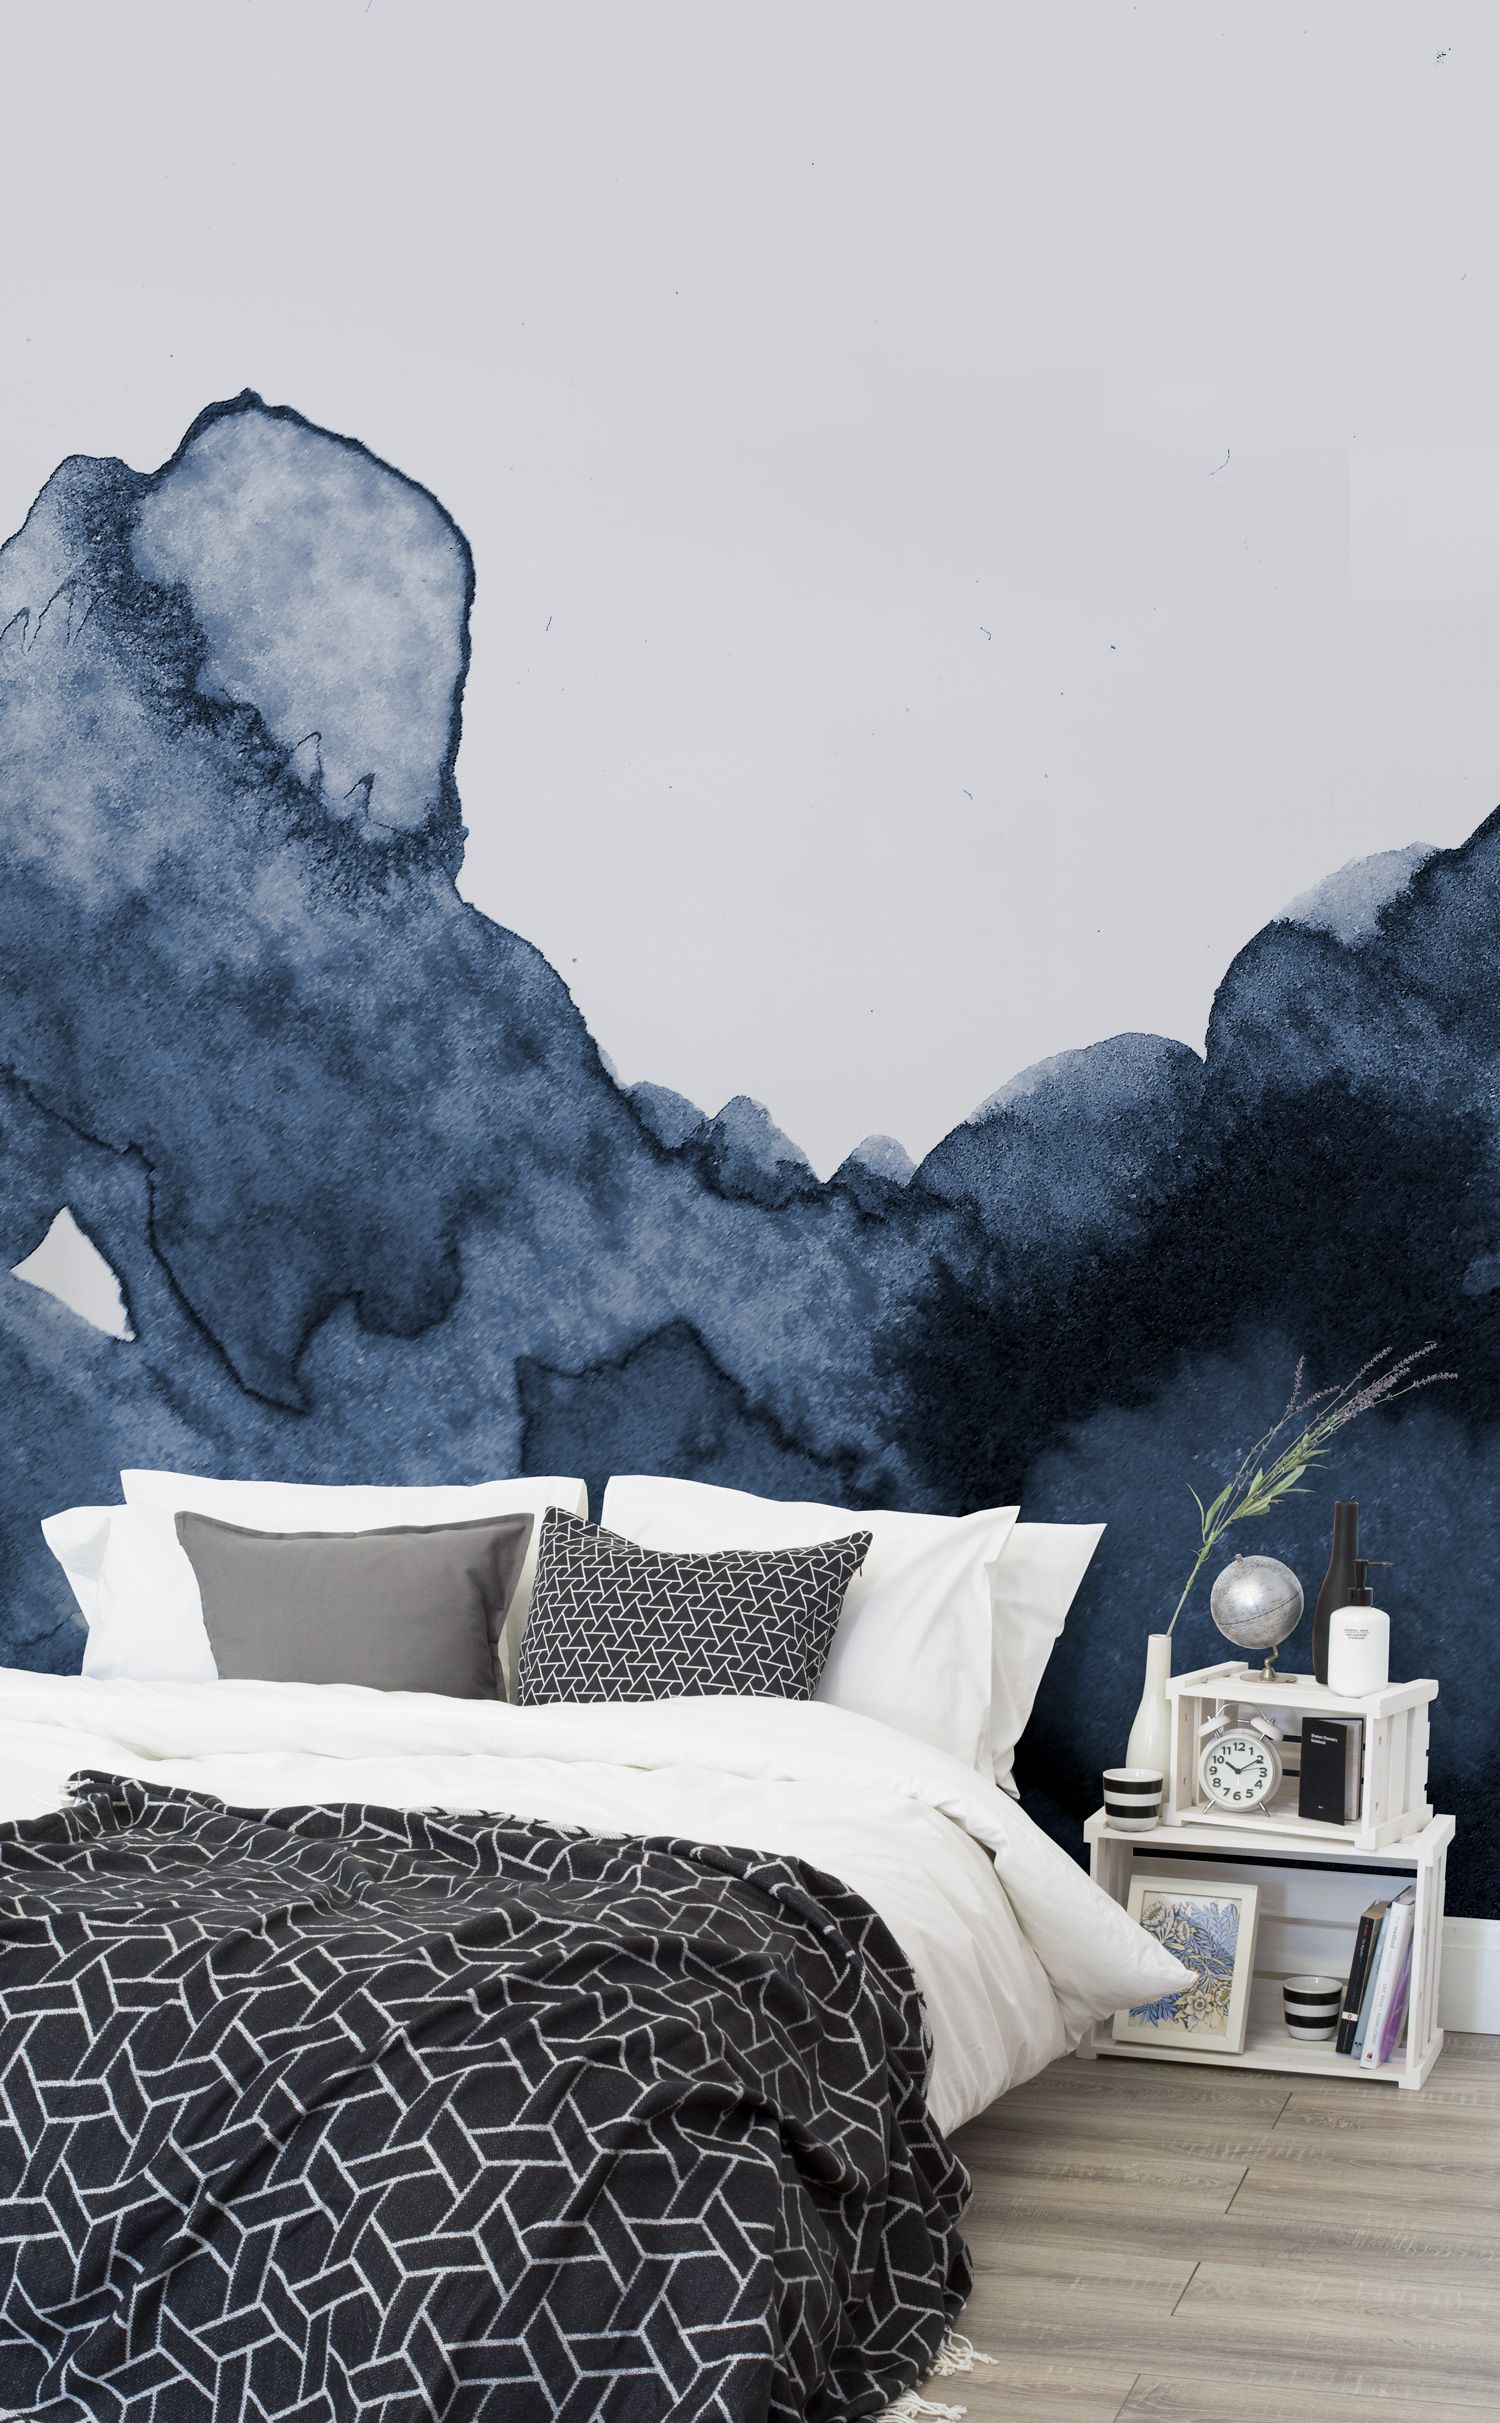 6 Wallpaper Designs To Help Banish Stress Home Wallpaper